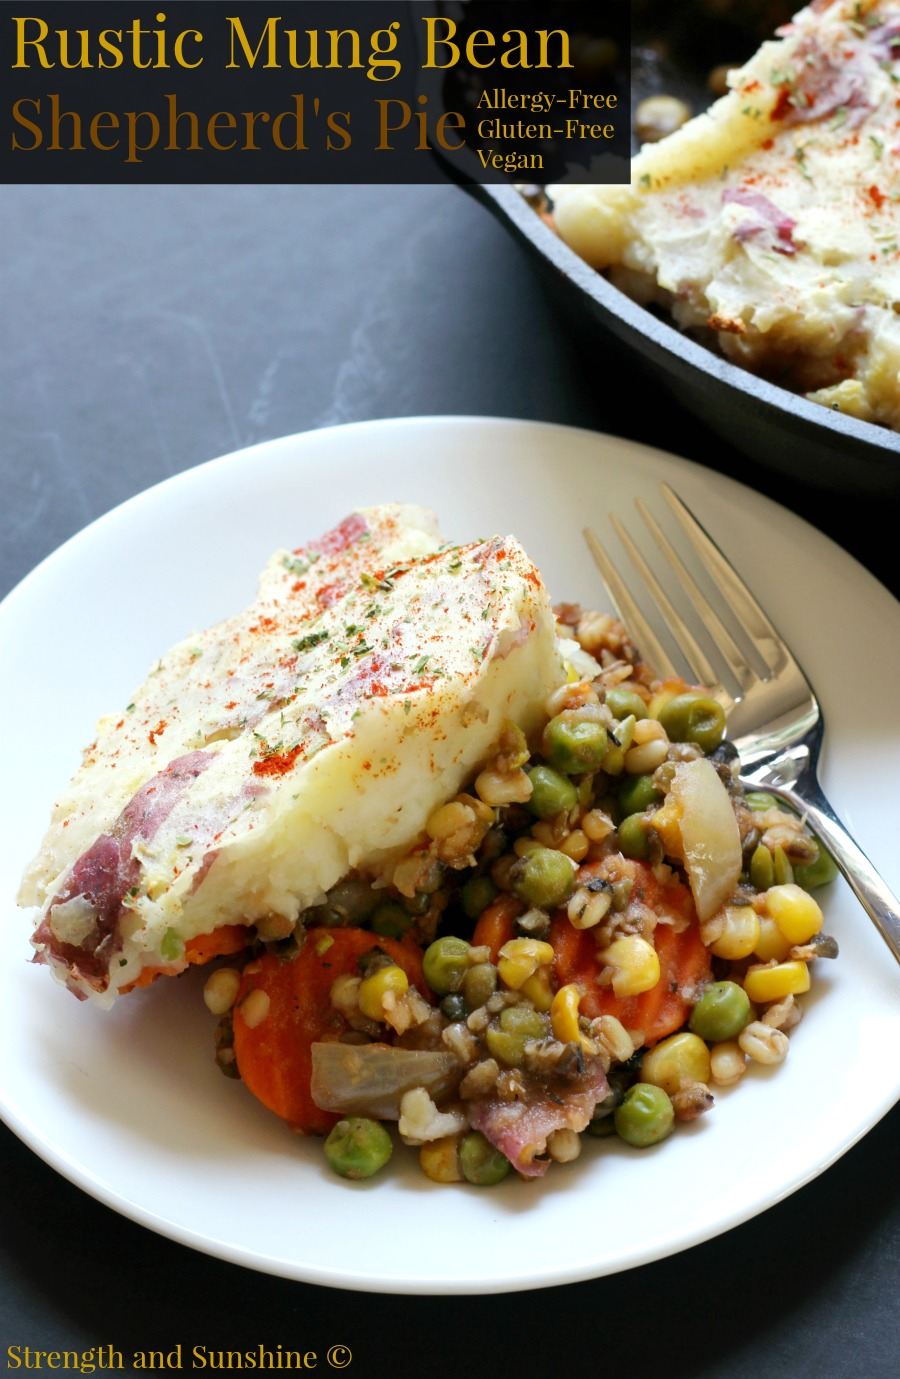 Rustic Mung Bean Shepherd's Pie (Gluten-Free, Vegan) | Strength and Sunshine @RebeccaGF666 The traditional and budget-friendly Irish recipe with a twist! This meatless Rustic Mung Bean Shepherd's Pie is gluten-free, vegan, and allergy-friendly. Whether you're in need of a easy family dinner to serve a crowd of just need some healthy comfort food, this cottage pie is the way to go!